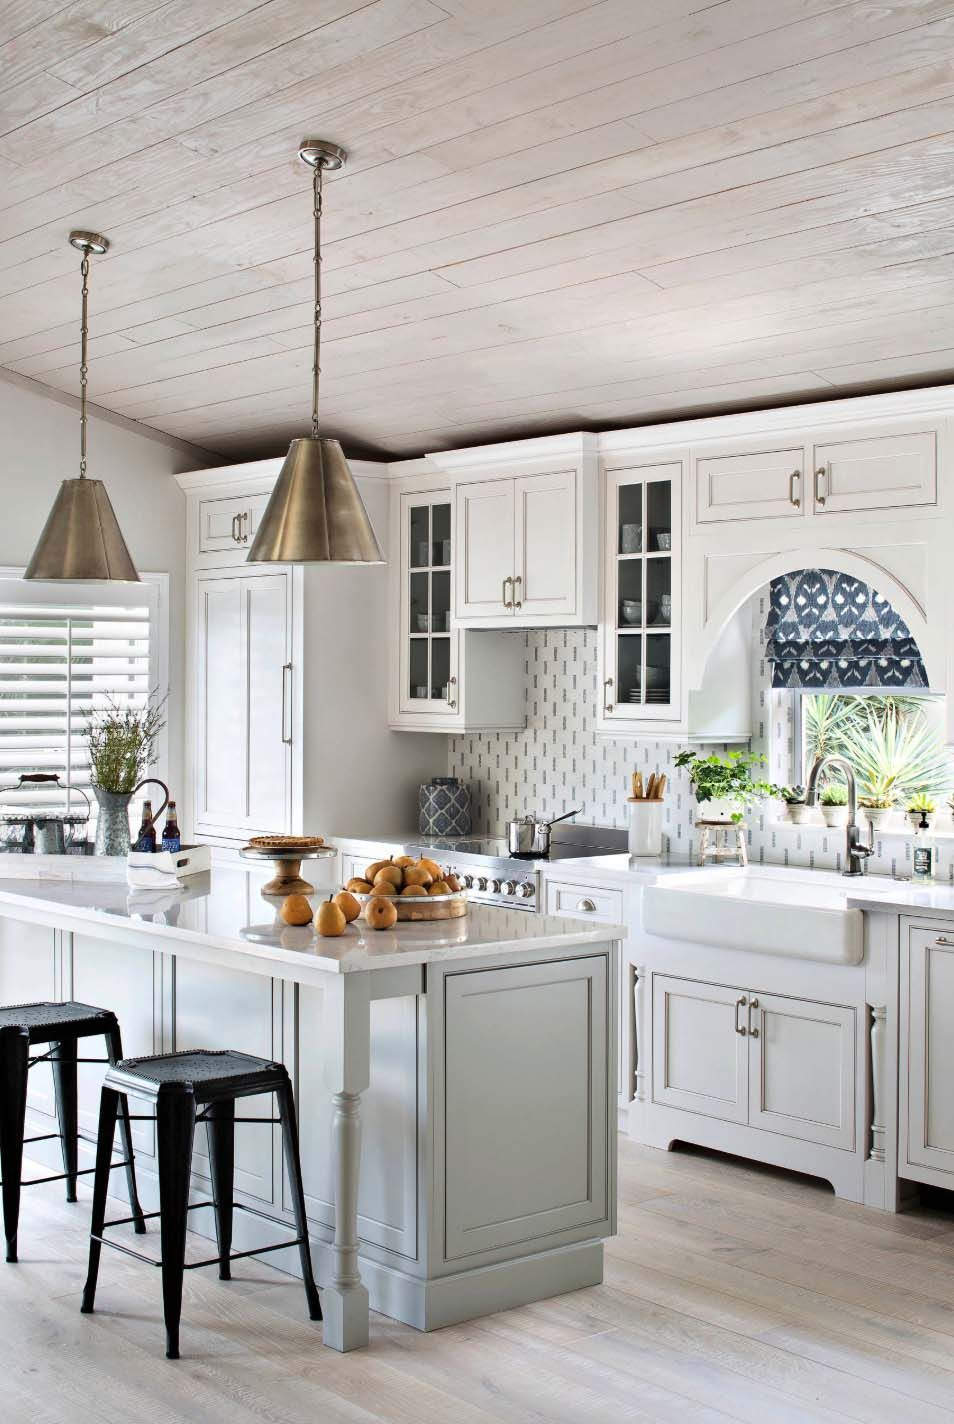 29 Beautiful Beach Style Kitchen Ideas For Your Beach House Or